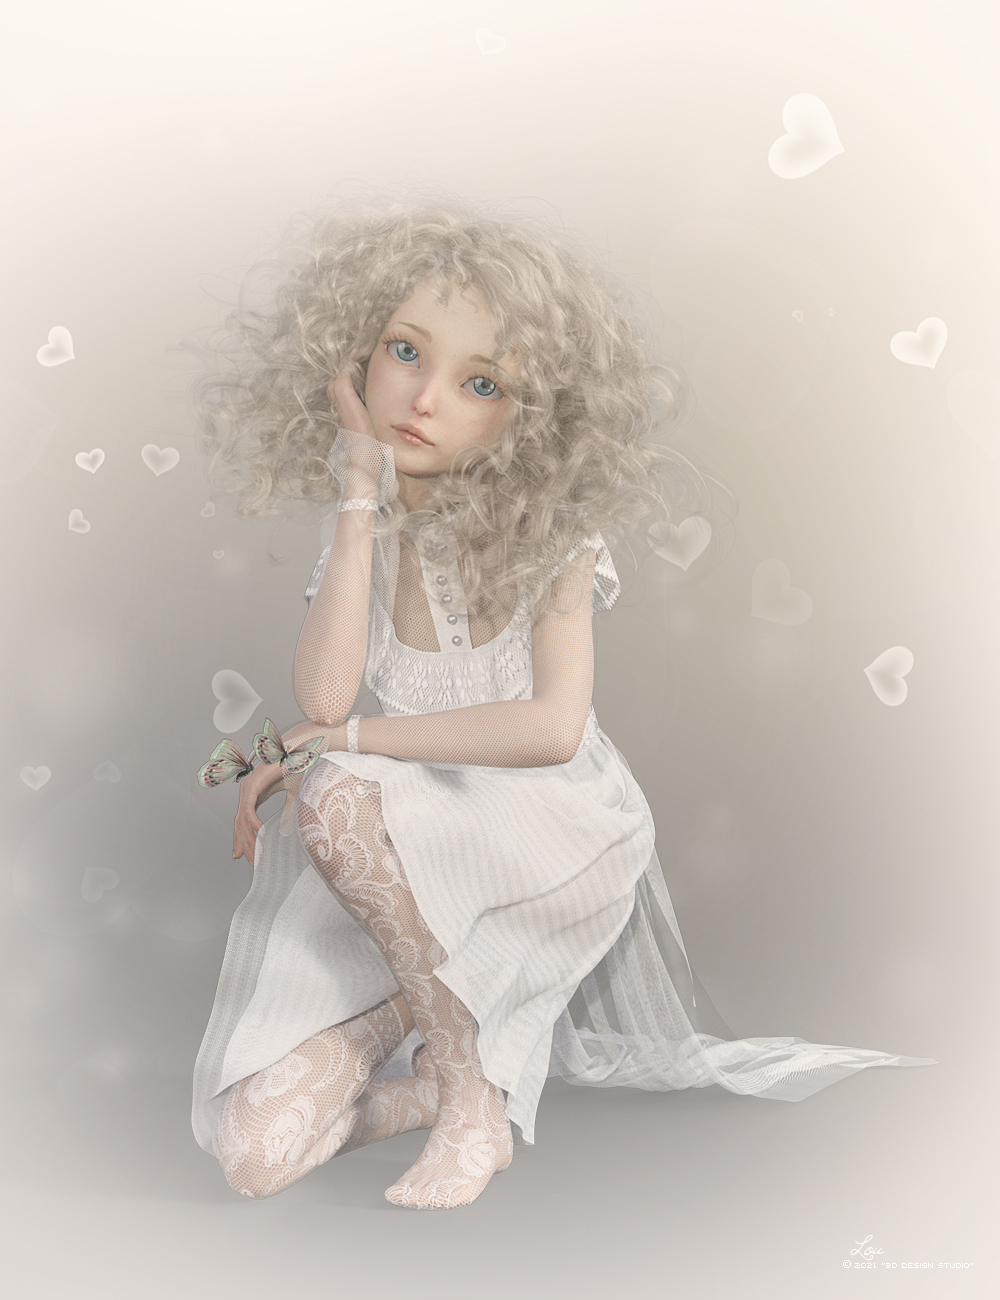 ~*Lou*~ by Leilana